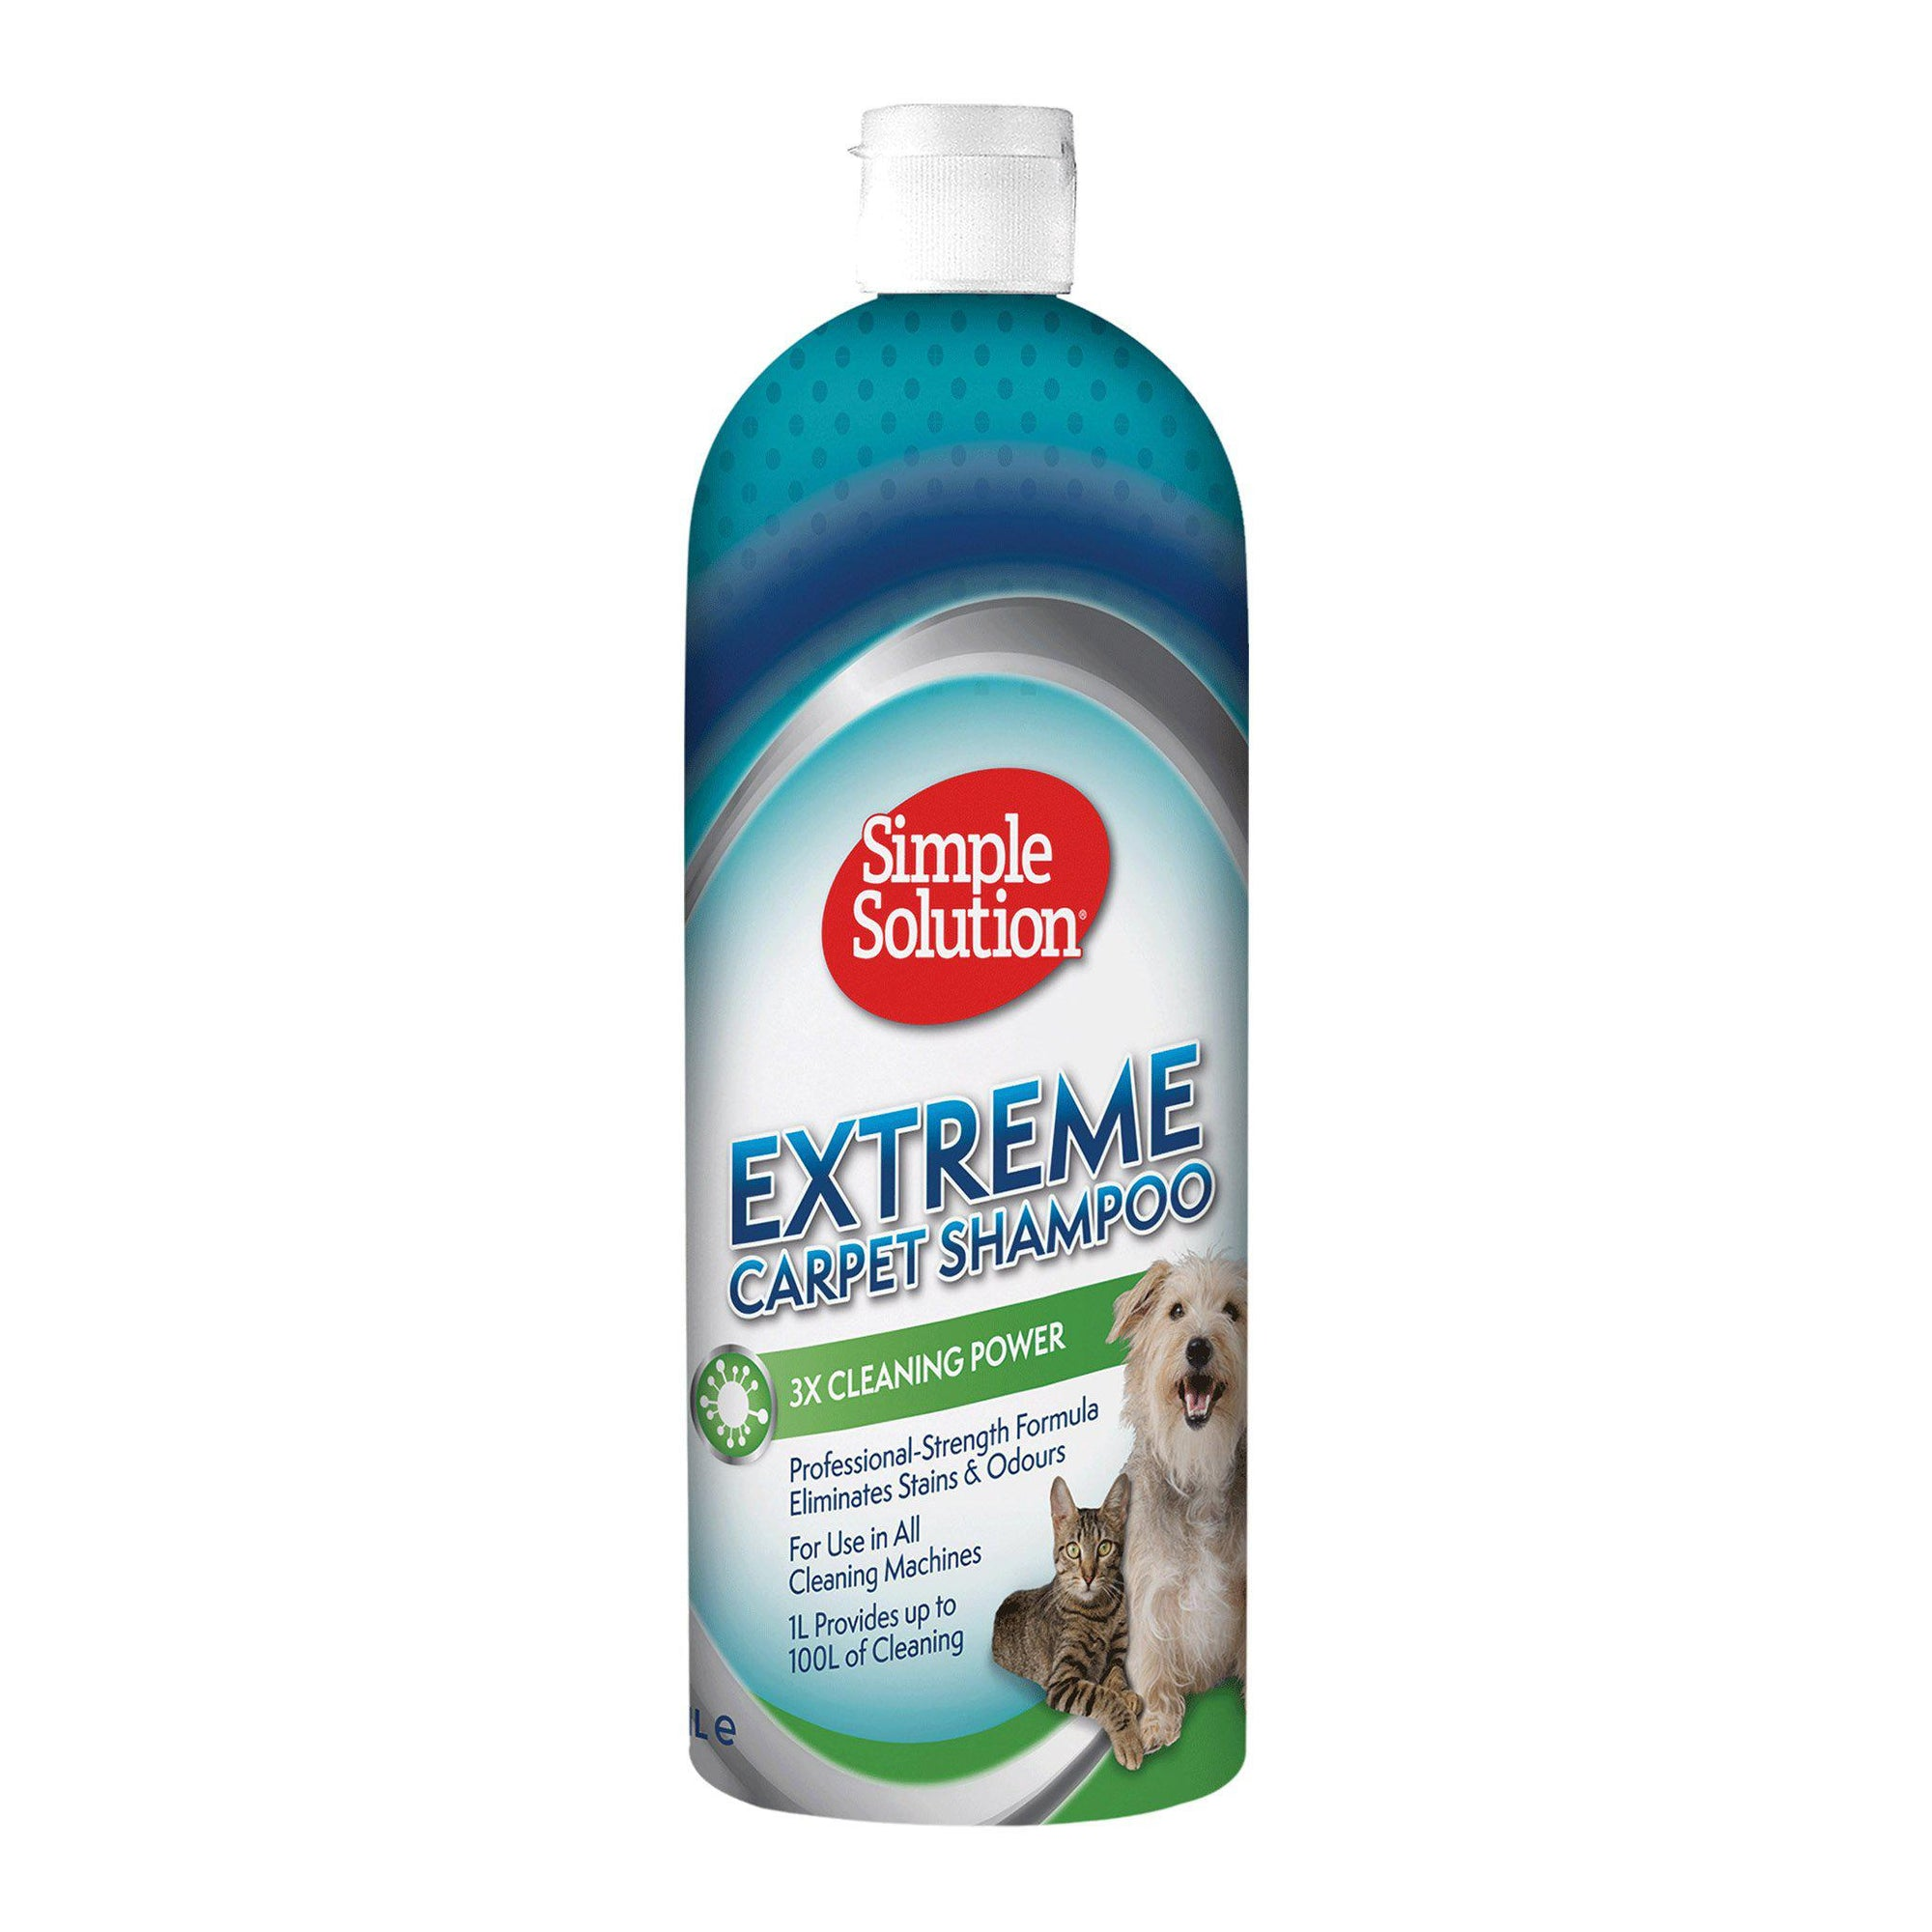 Simple Solution Extreme Carpet Shampoo 1000ml - ComfyPet Products